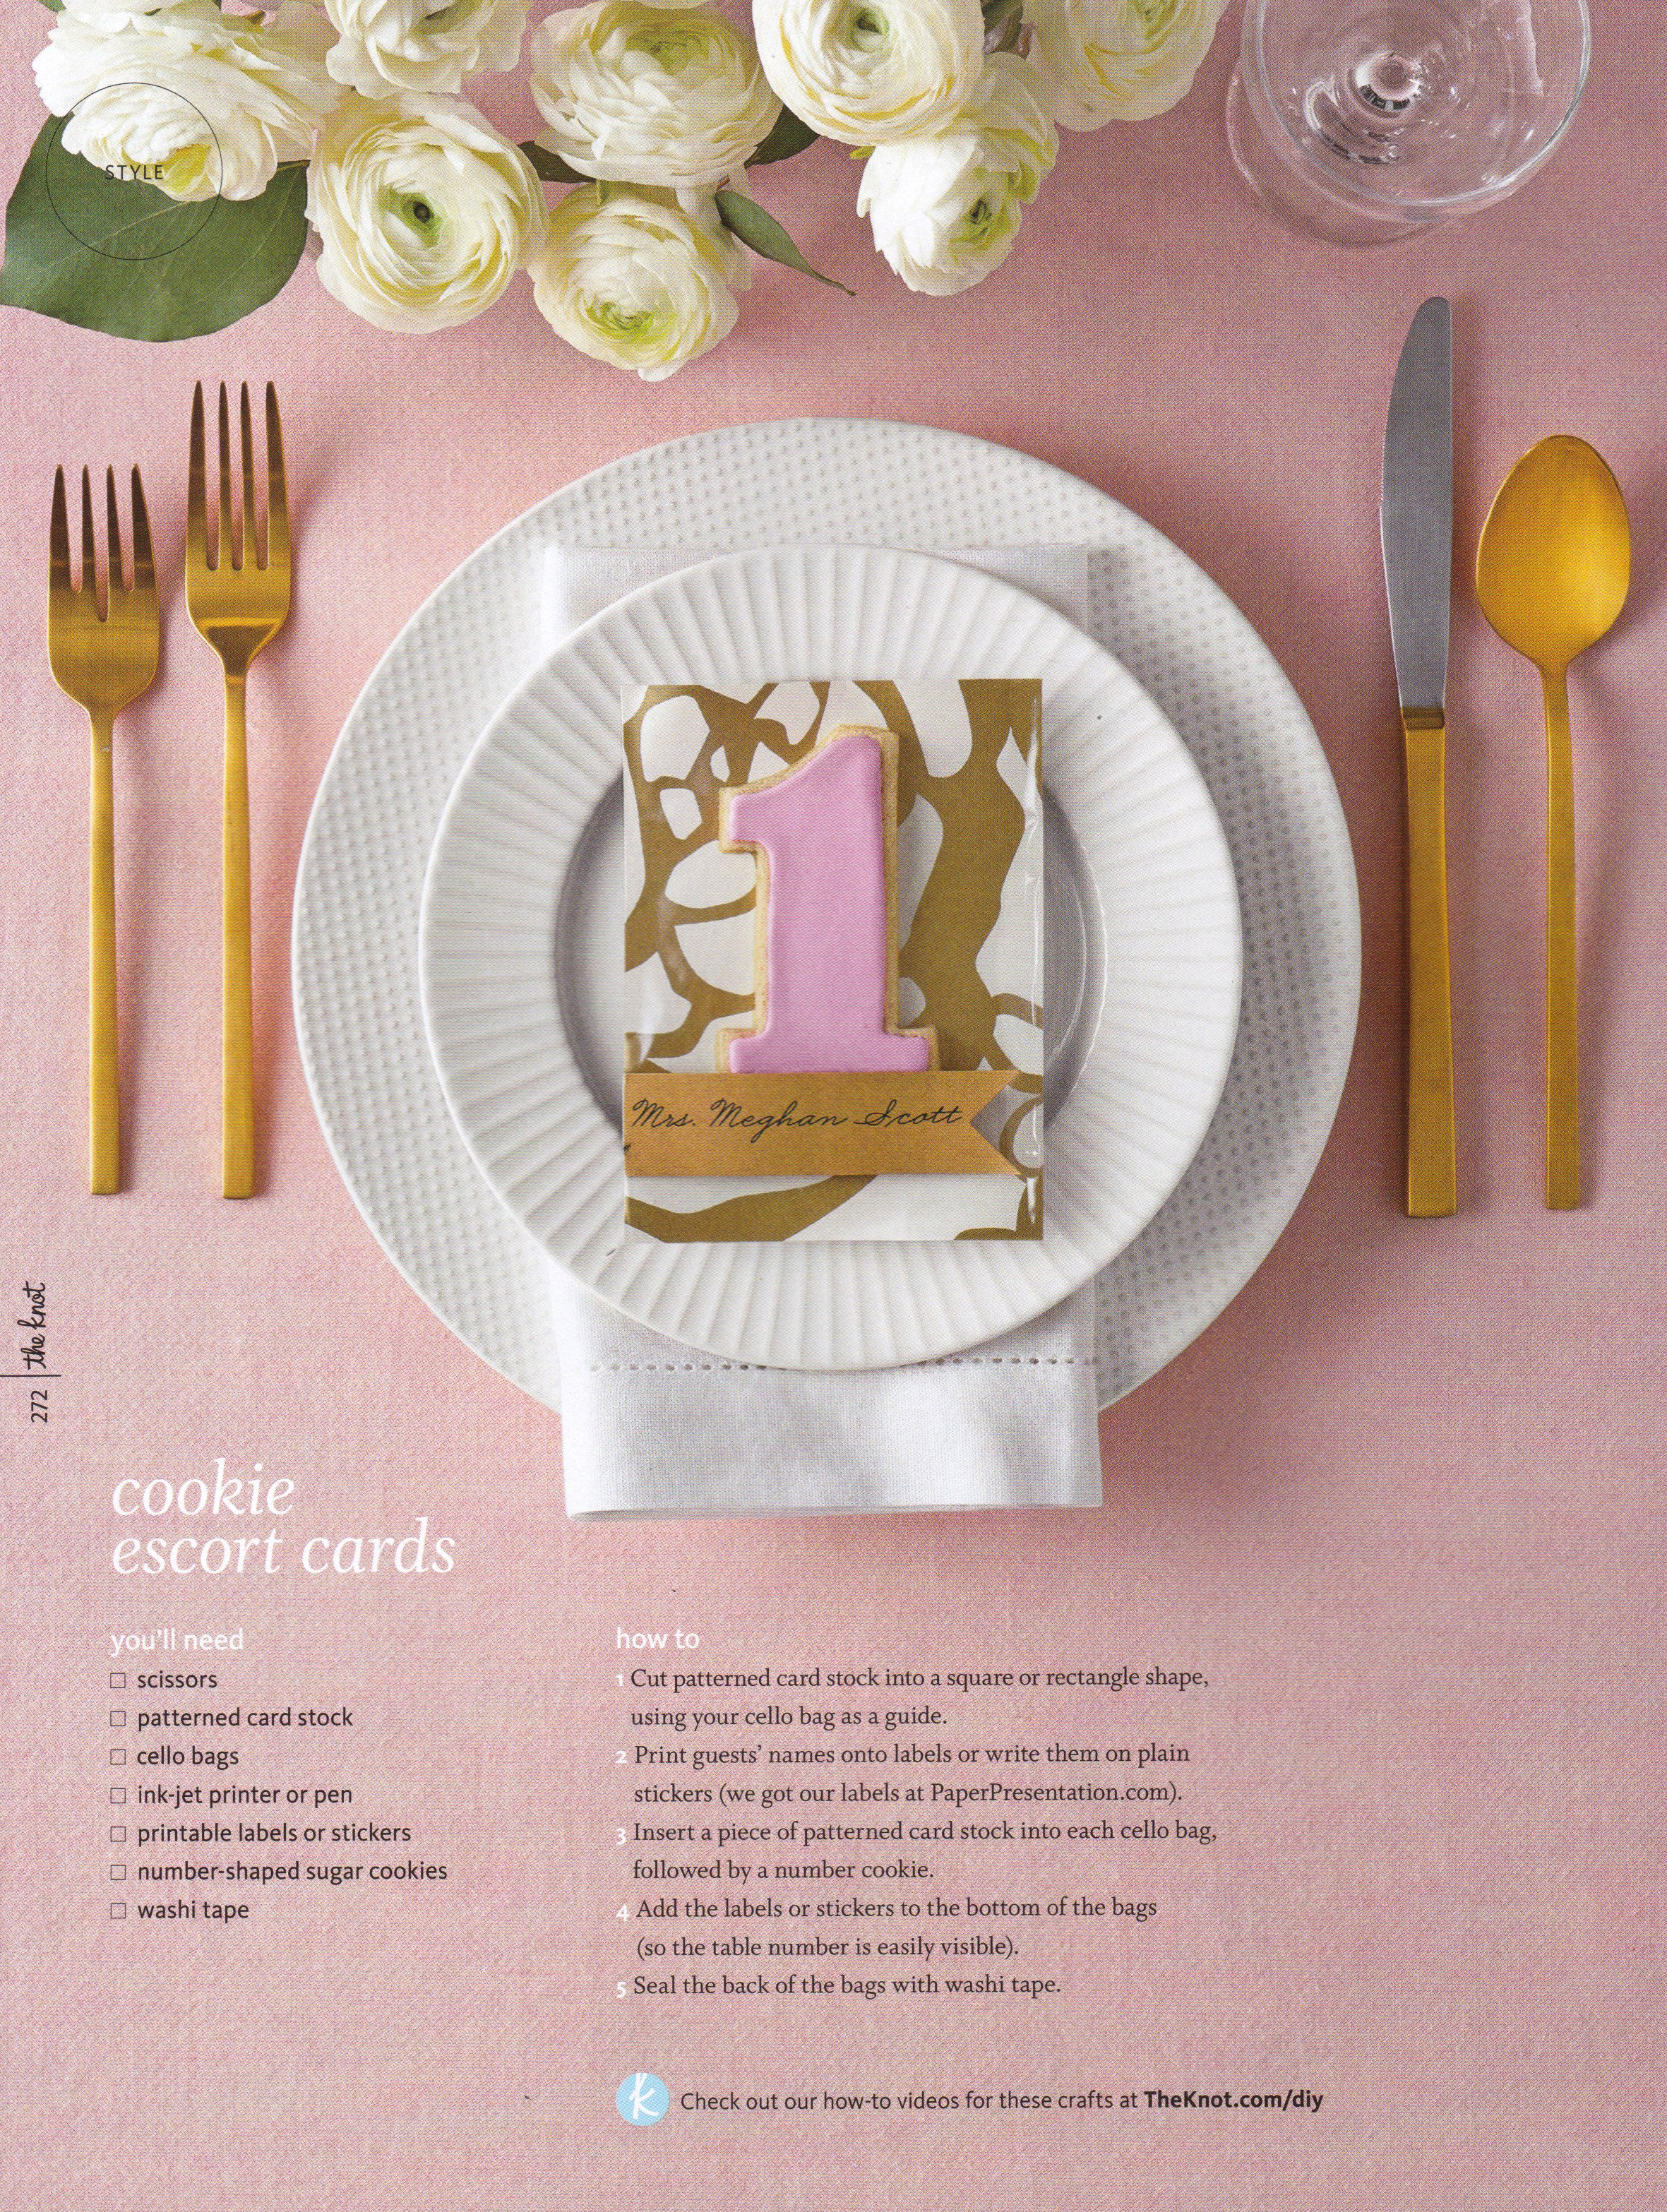 TheKnot-PlaceSetting.jpg